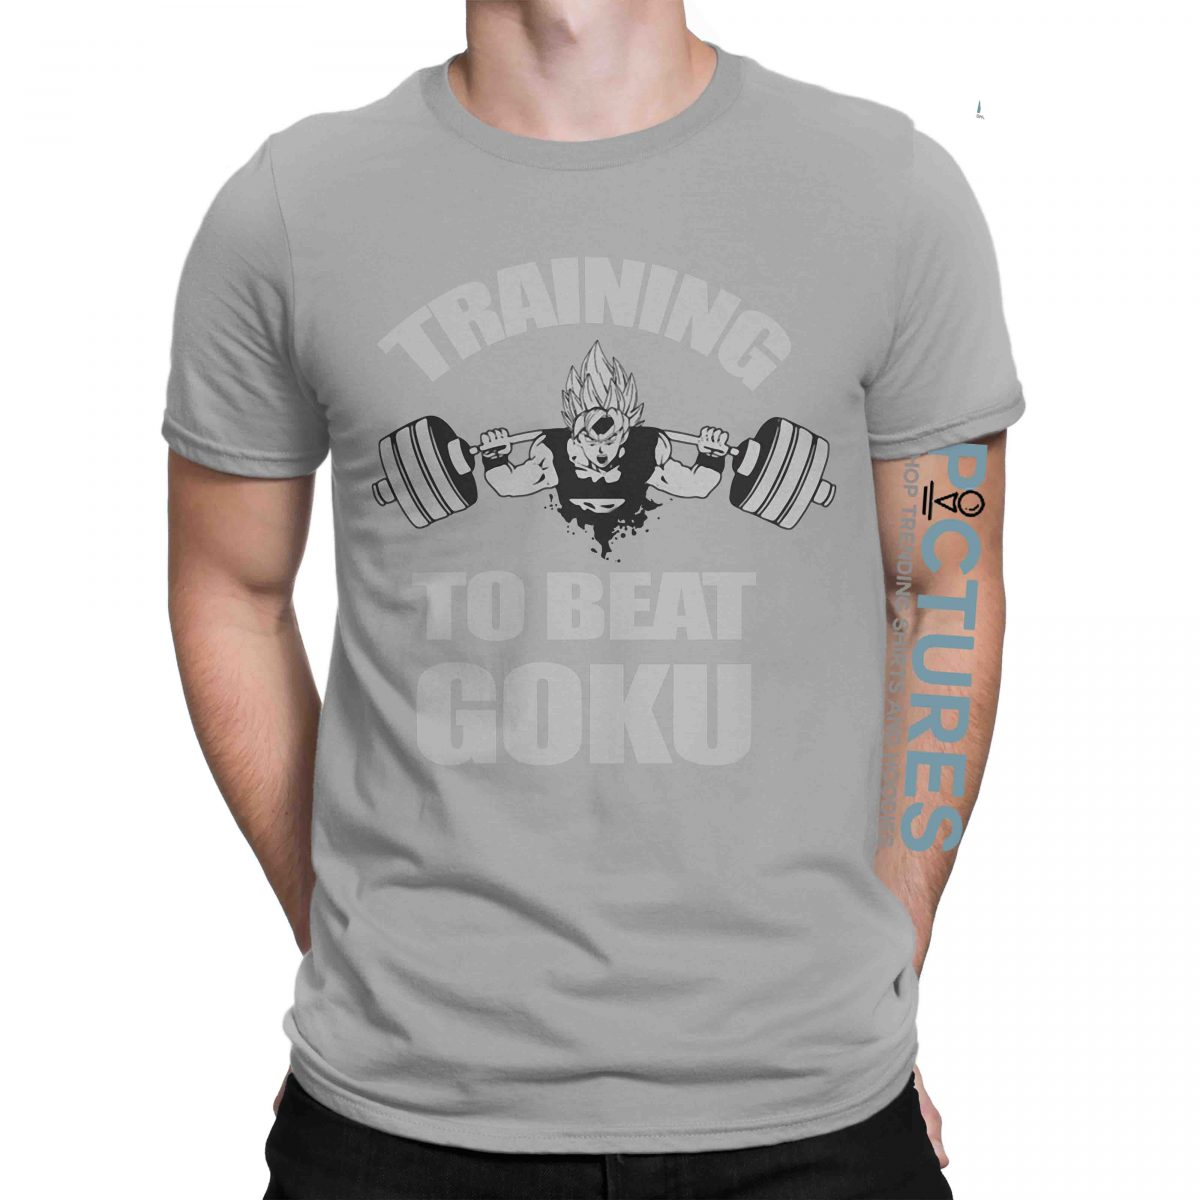 Training to beat goku workout sweat activated motivational shirt